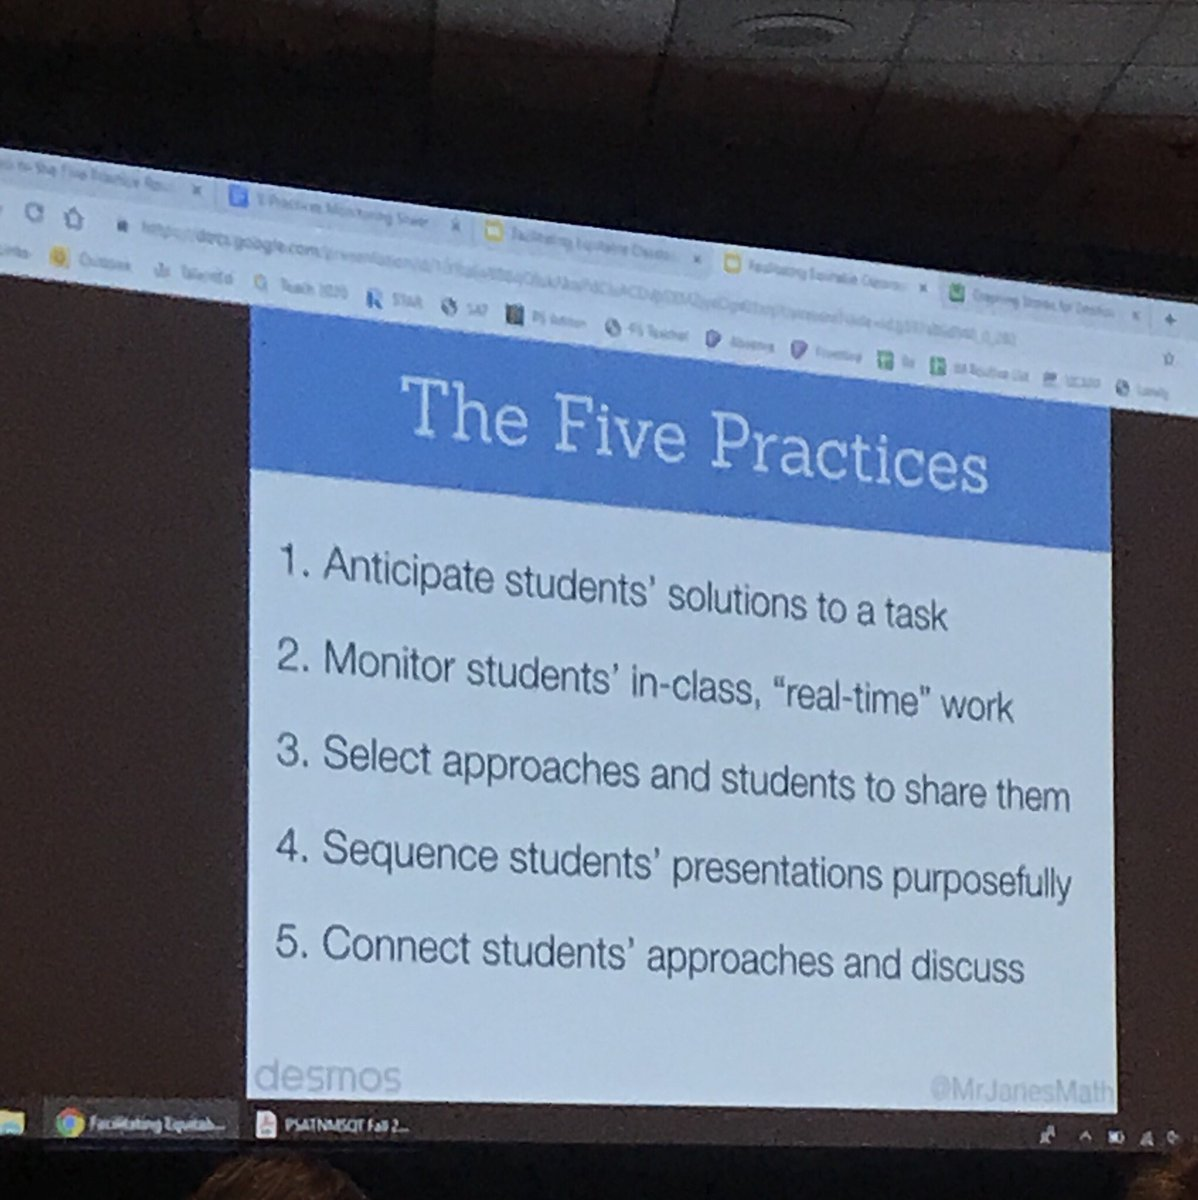 #ISTE19 @MrJanesMath bringing in the 5 practices of orchestrating math discussions with Desmos.